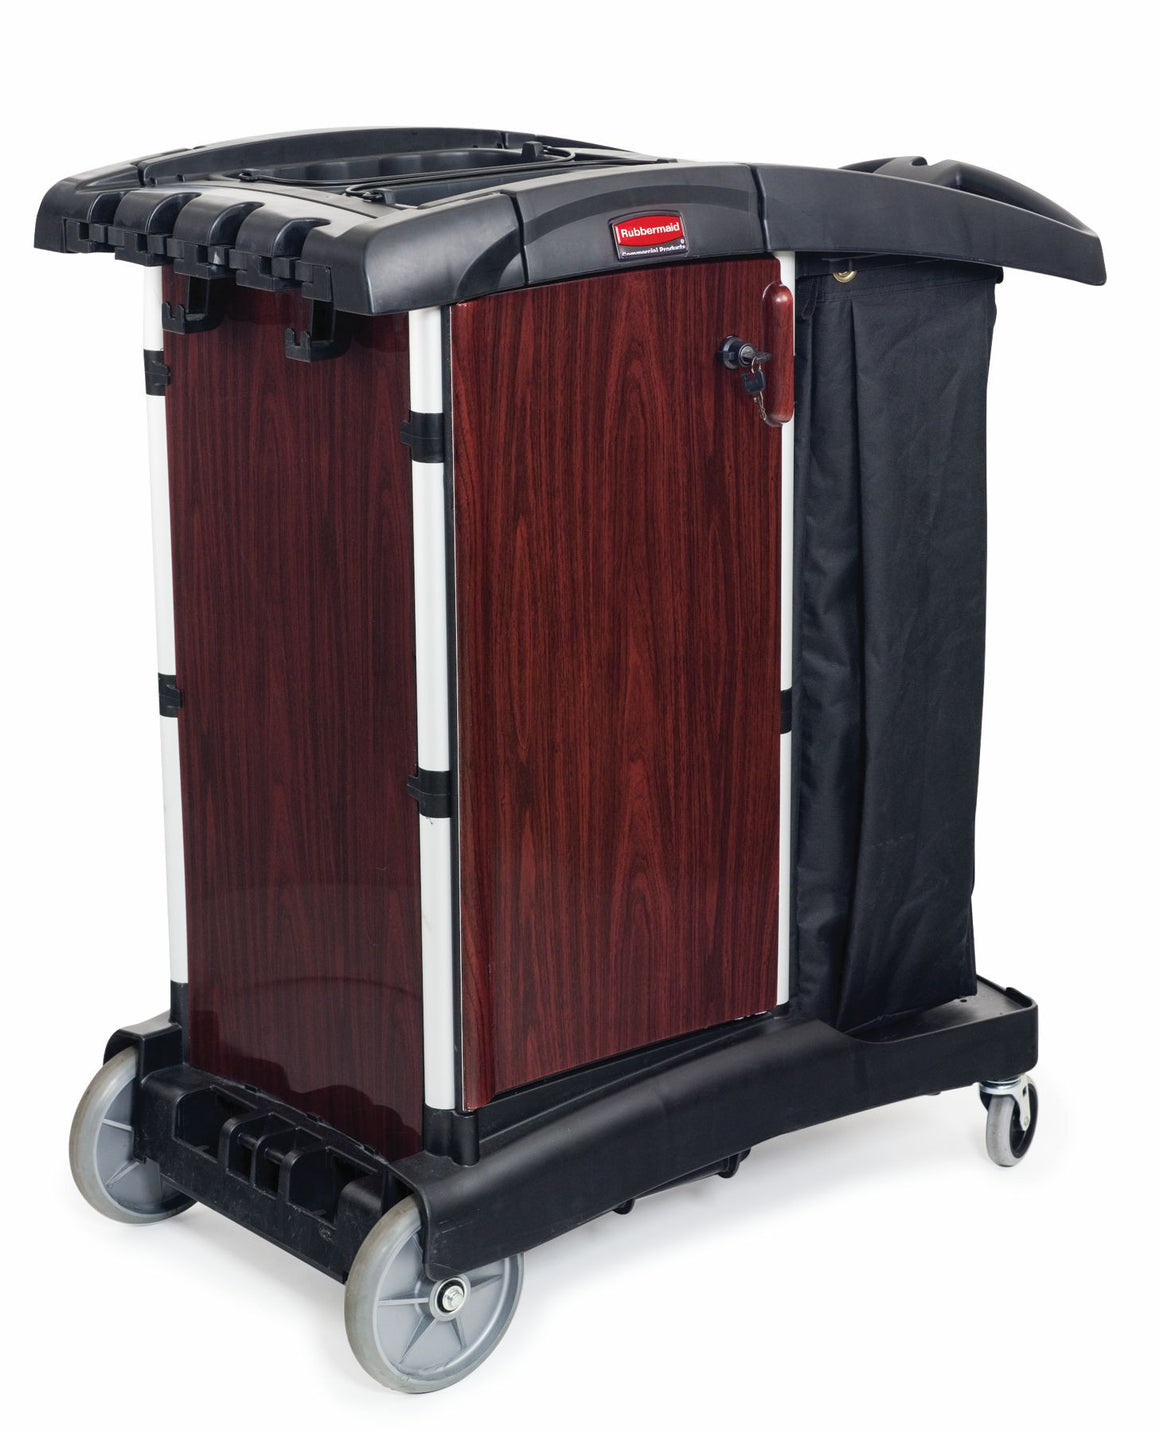 DELUXE PANELED COMPACT HOUSEKEEPING CART